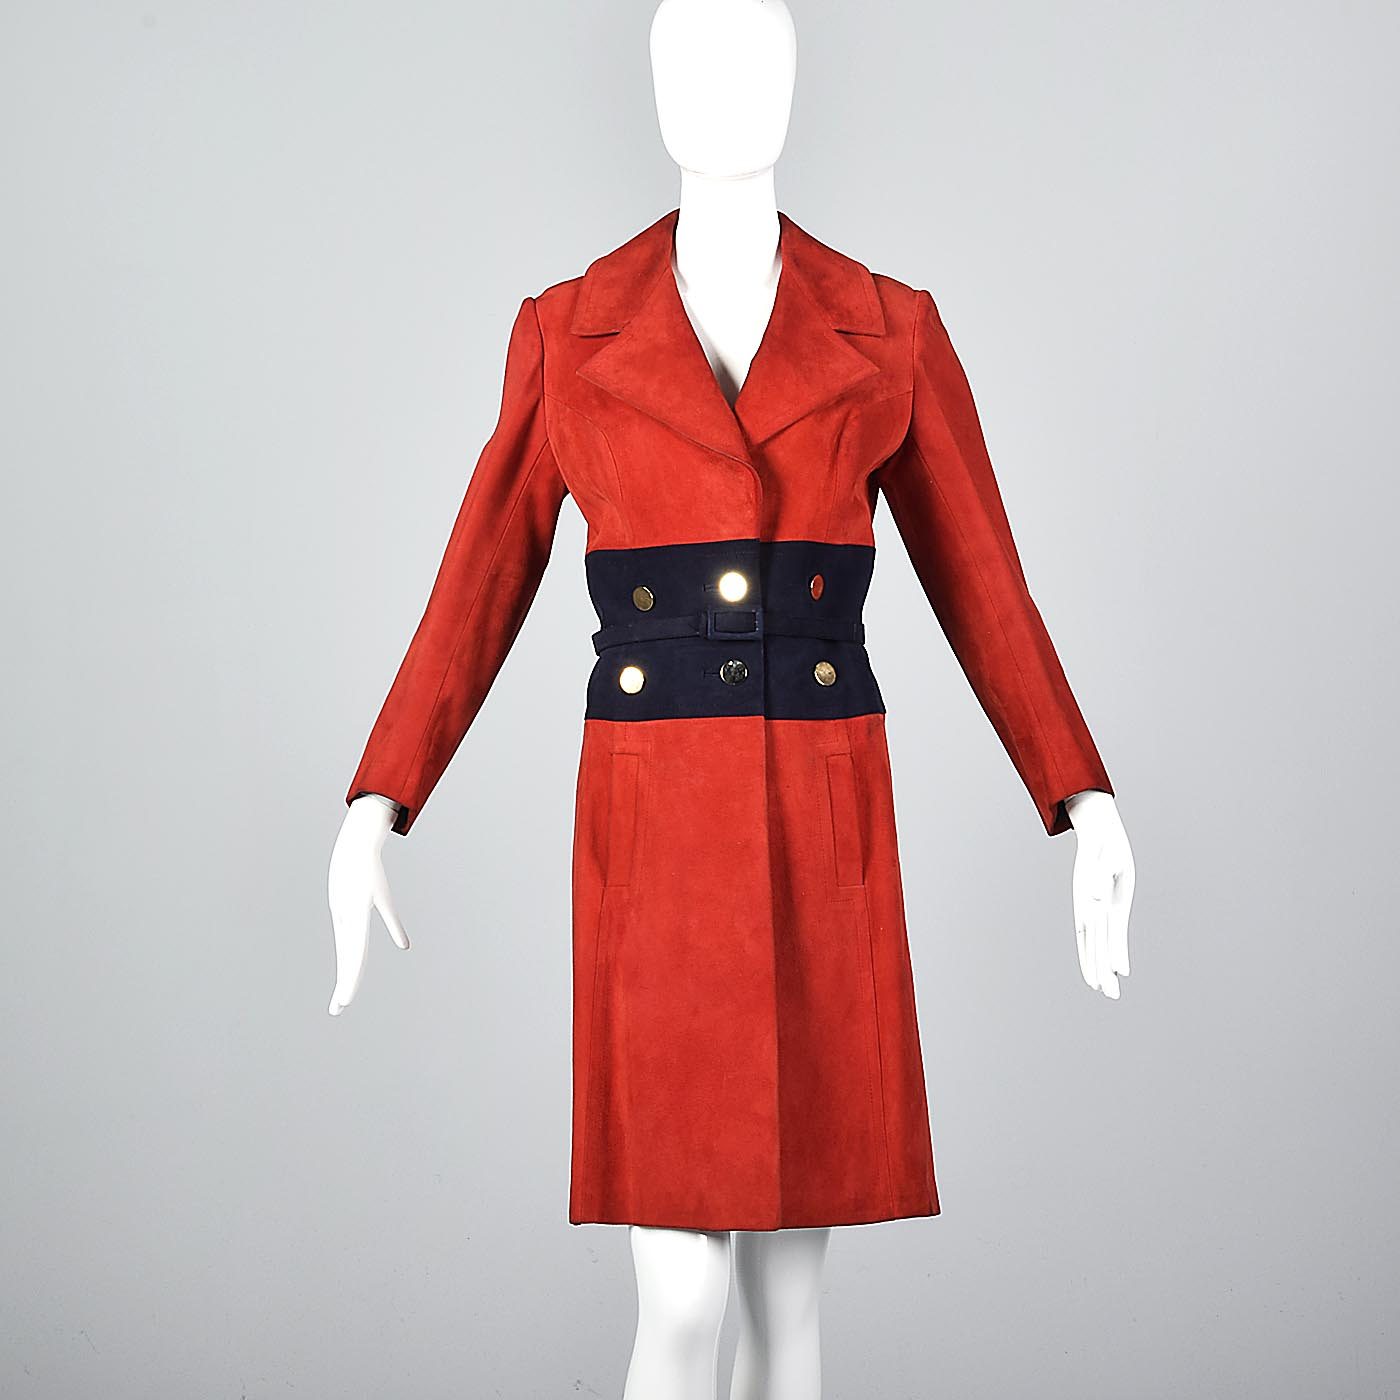 Bright Red Loewe Leather Trench Coat with Navy Blue Waist and Mod Gold Buttons